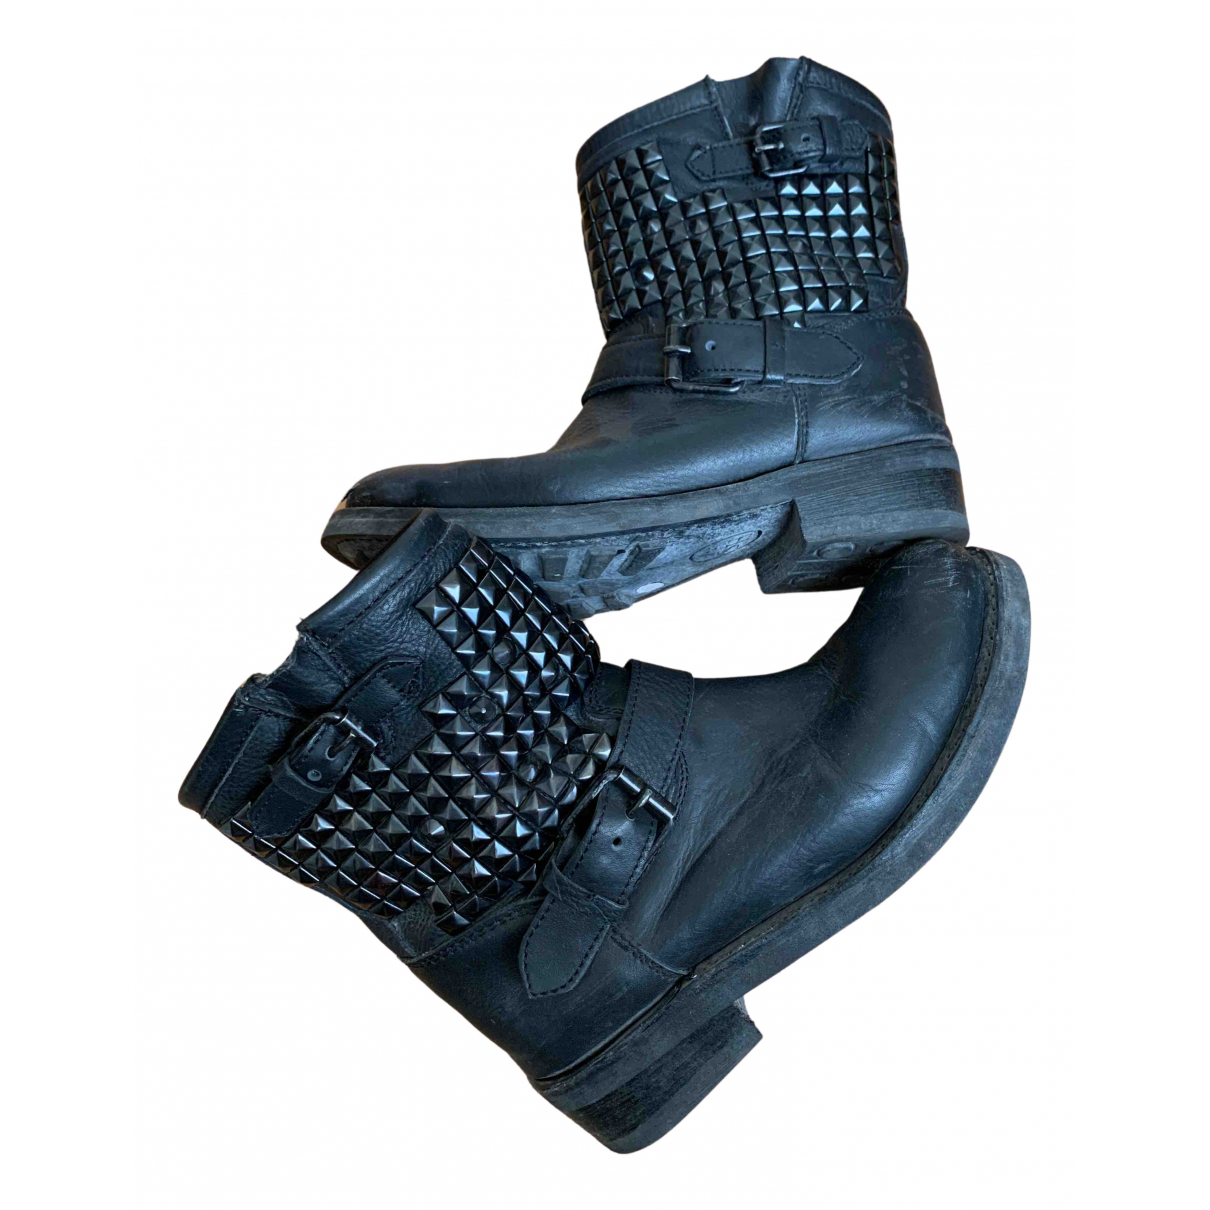 Ash N Black Leather Ankle boots for Women 40 EU